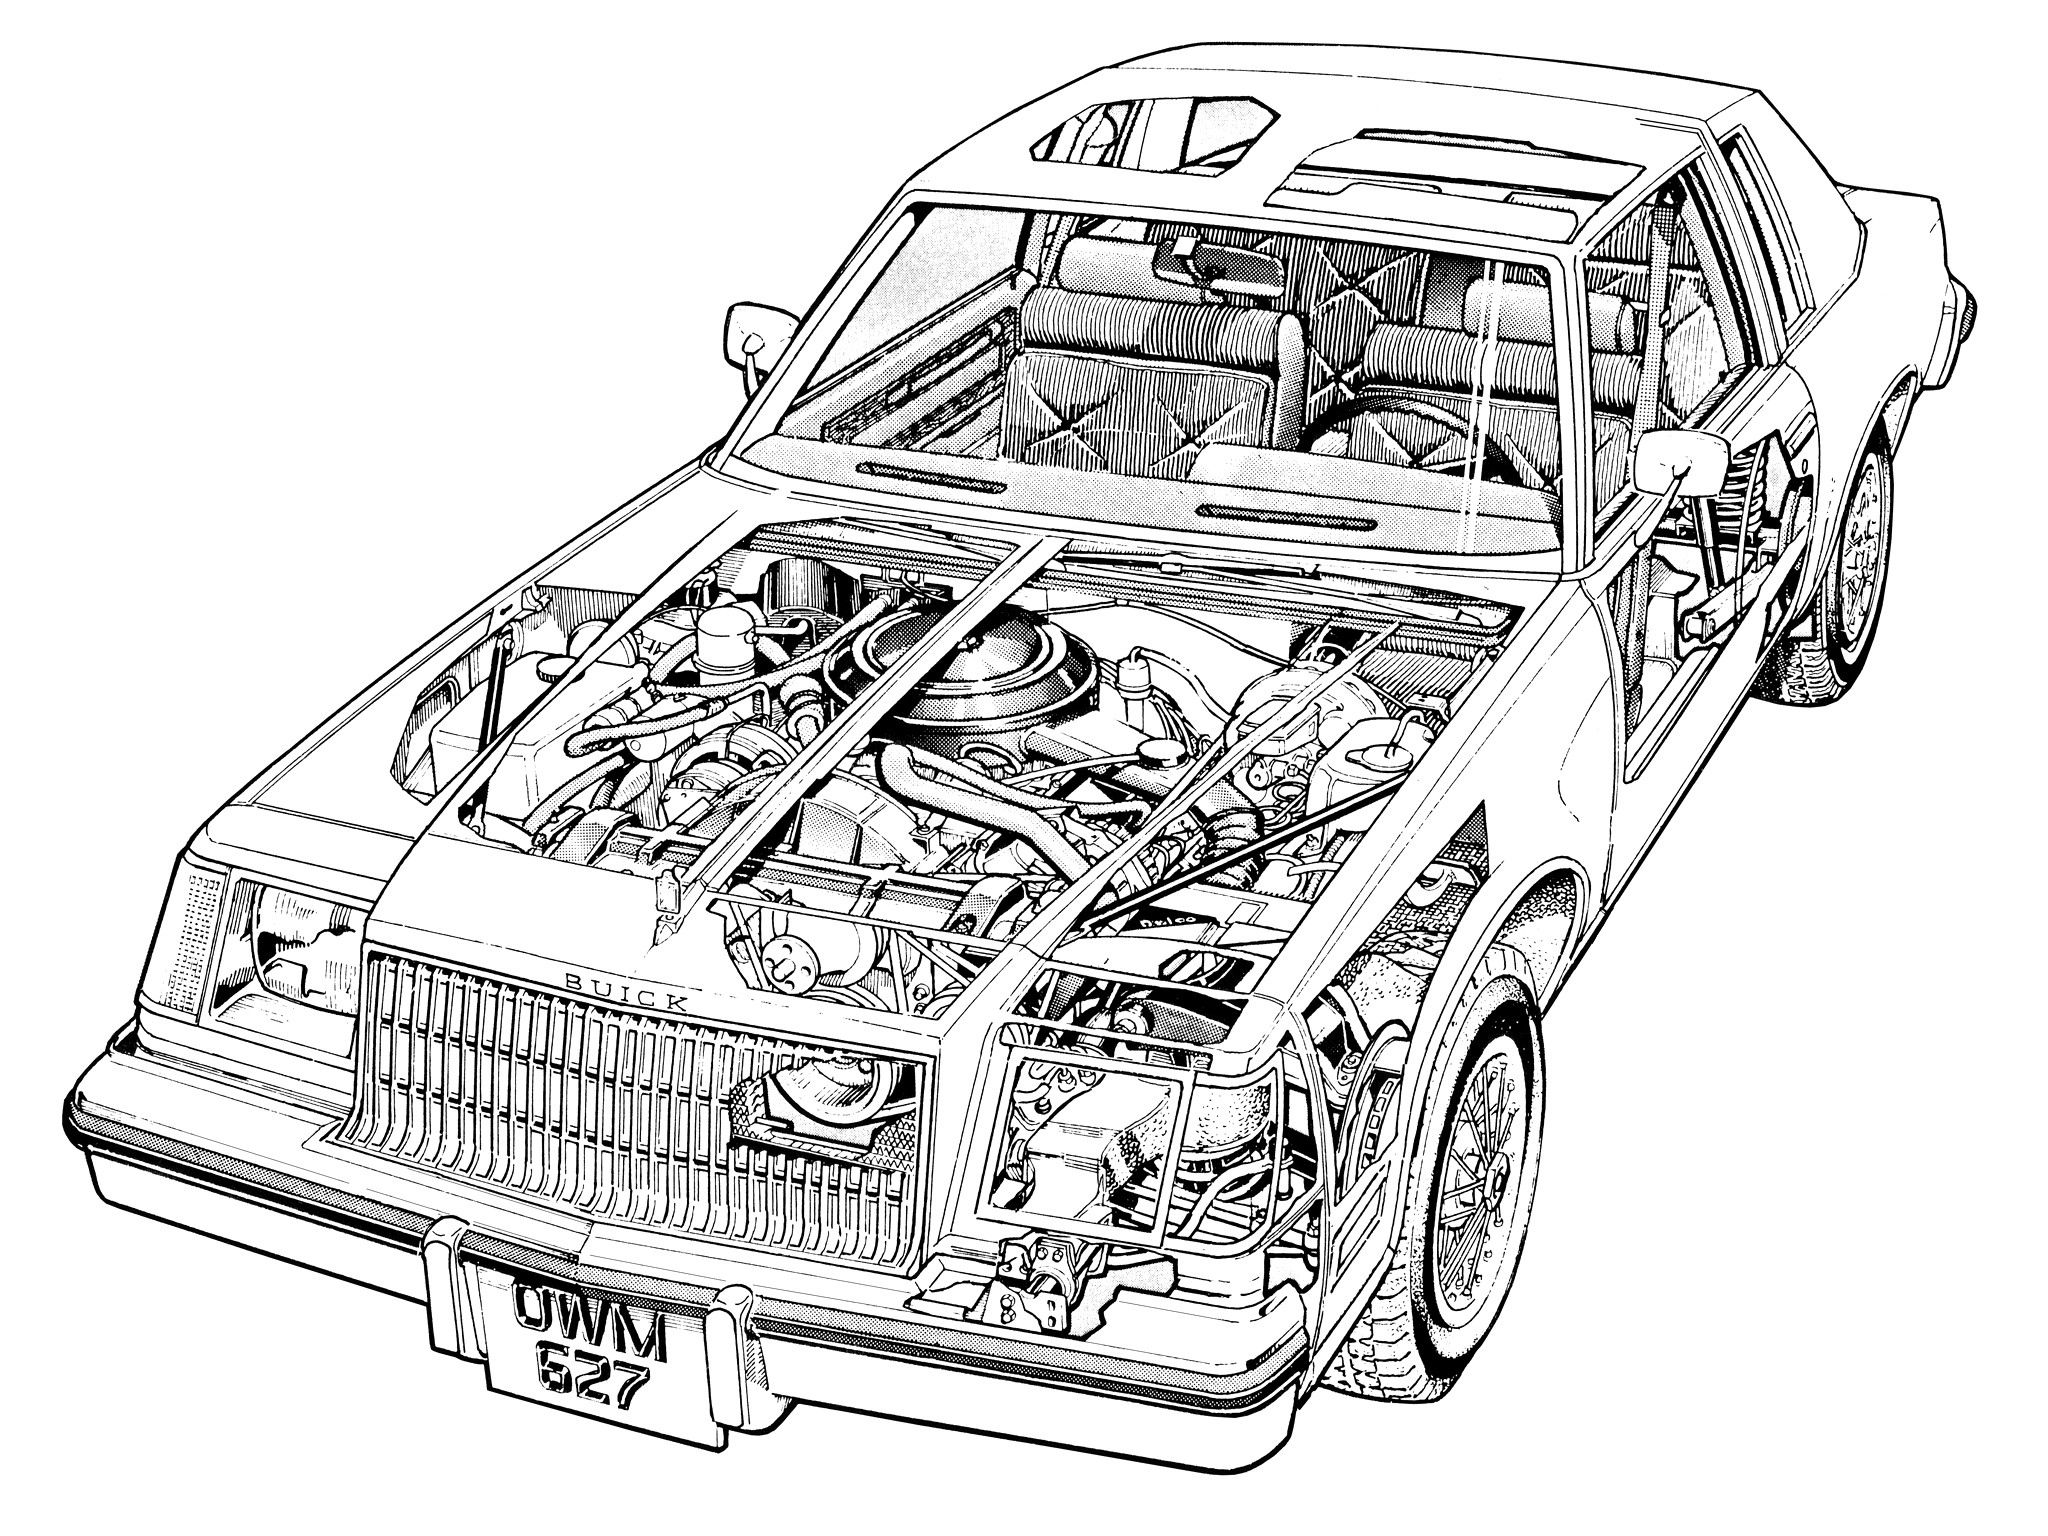 1978 79 buick regal coupe illustrated by terry davey cutaway Ford LTD Country Squire 1978 79 buick regal coupe illustrated by terry davey